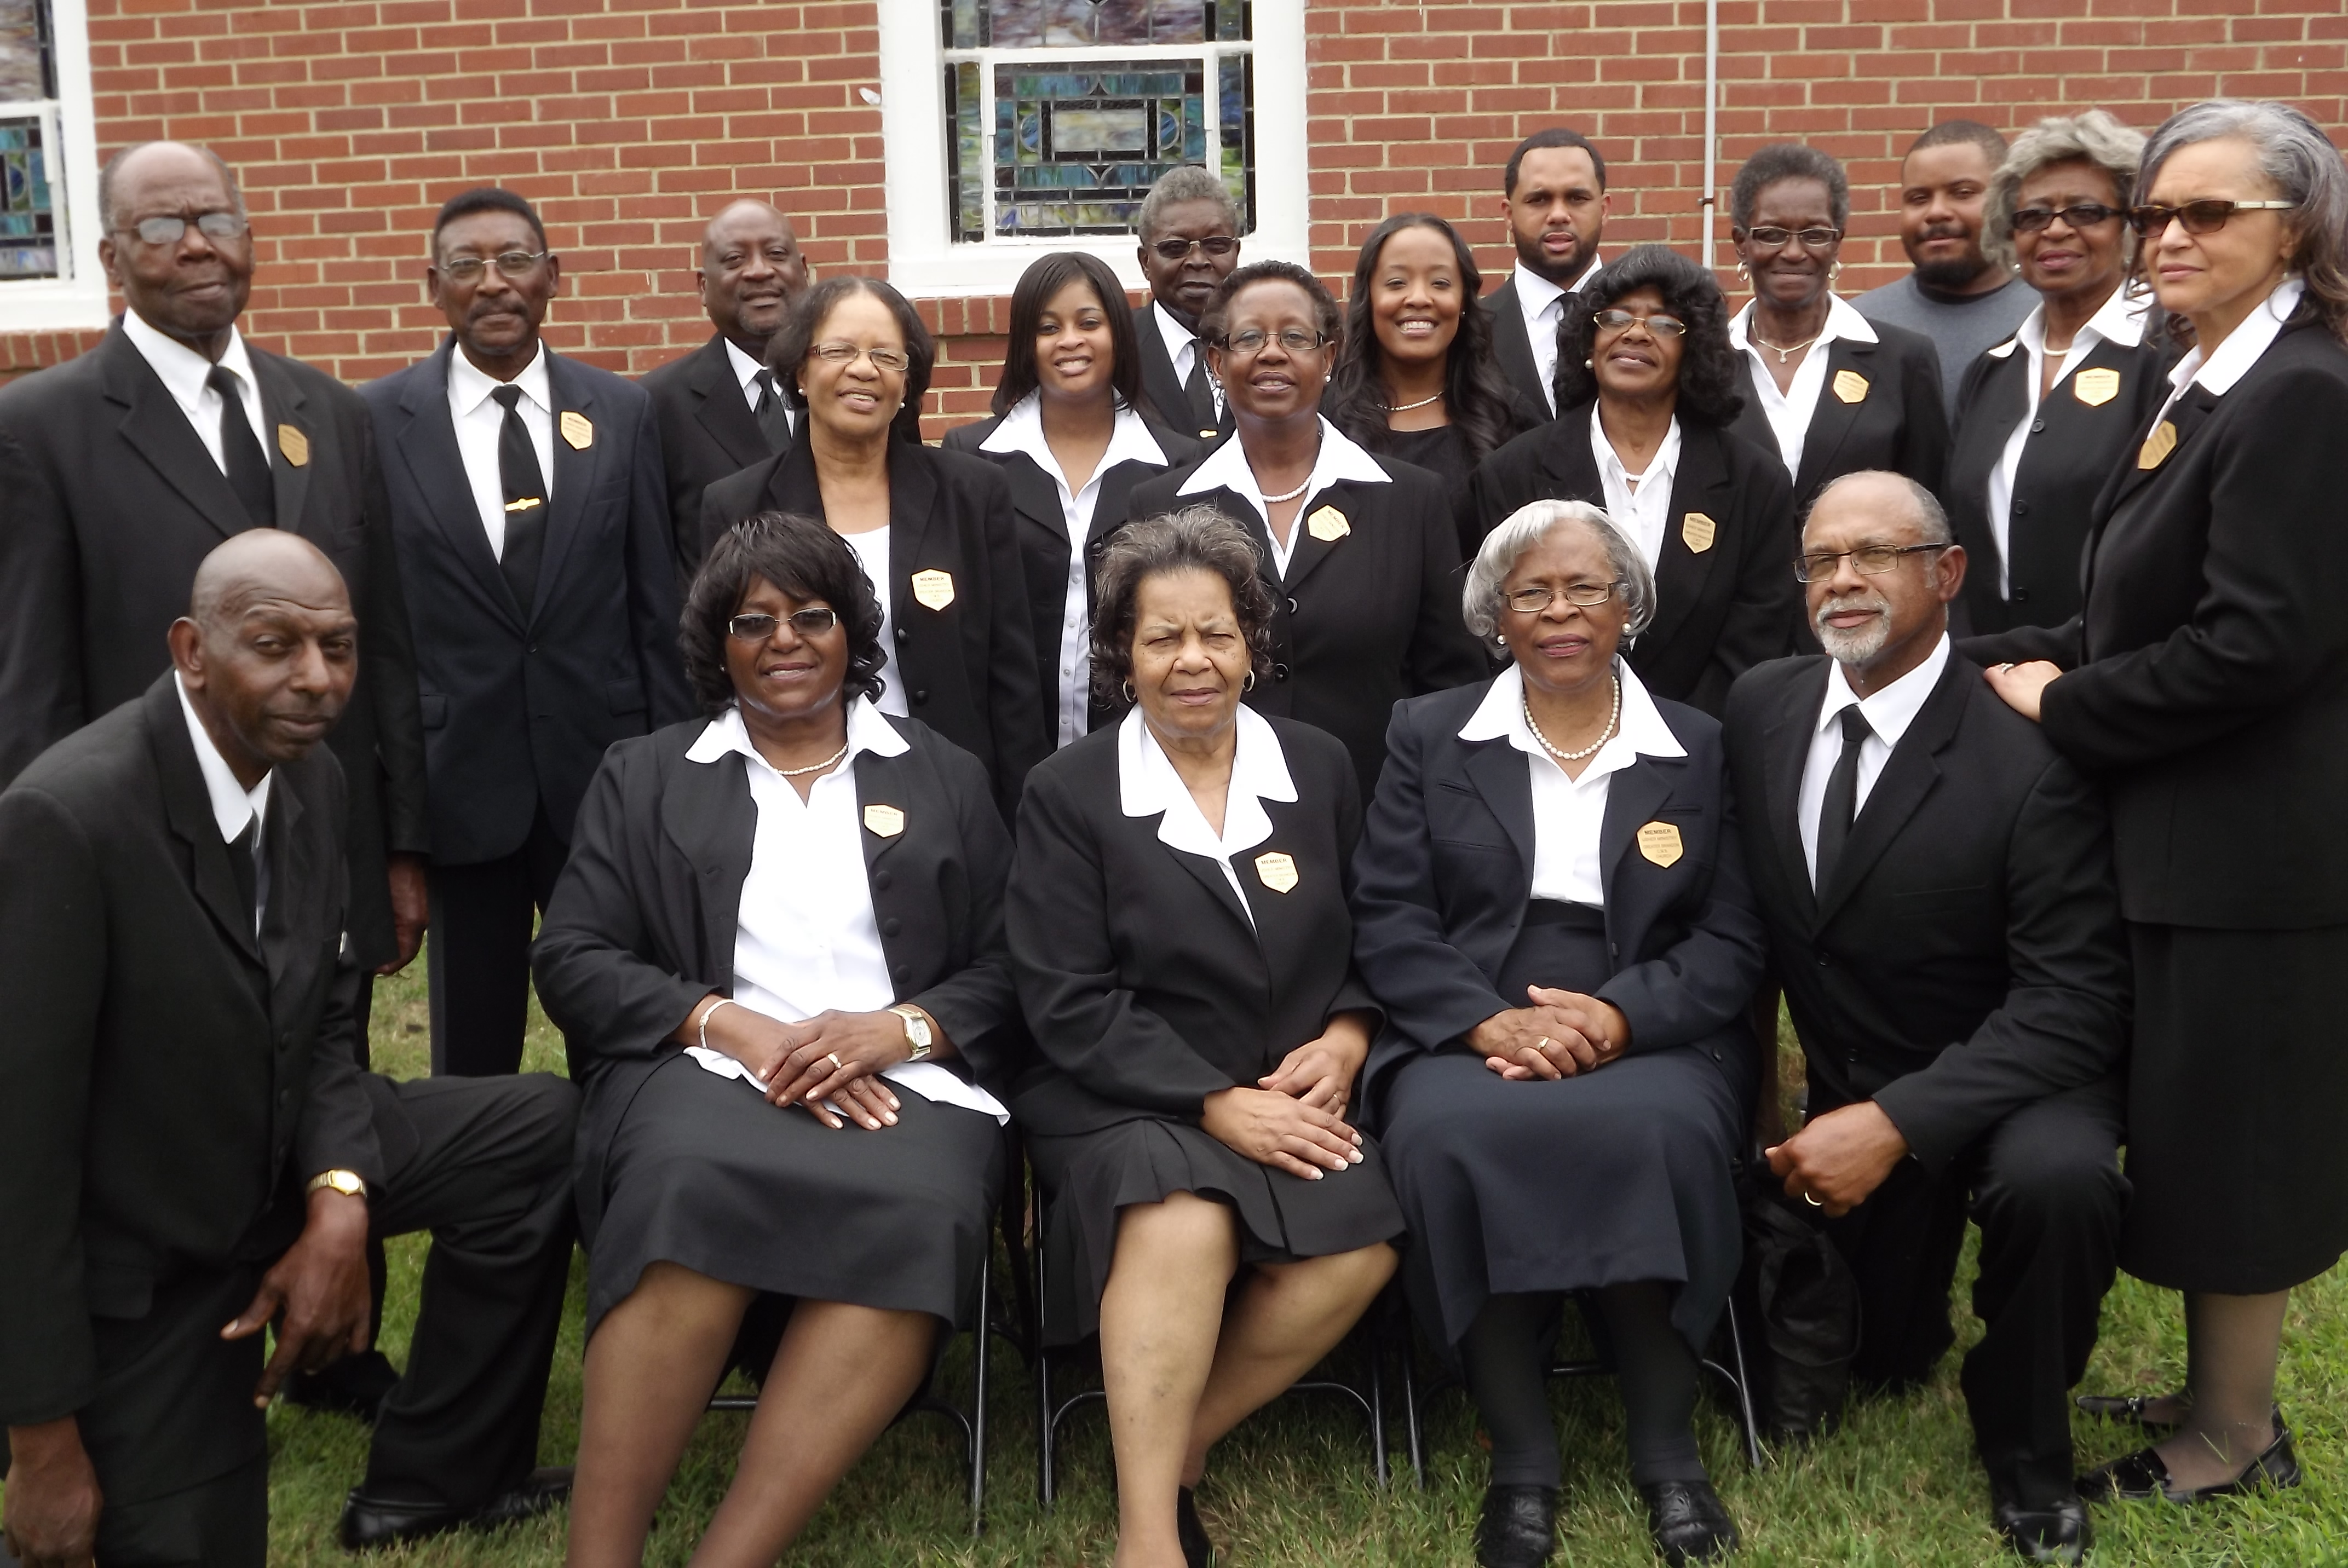 Greater brandon chapel missionary baptist church ushers ushers to be a beacon of light as we greet our fellowman and express the importance of the position to all that serve meet greet seat m4hsunfo